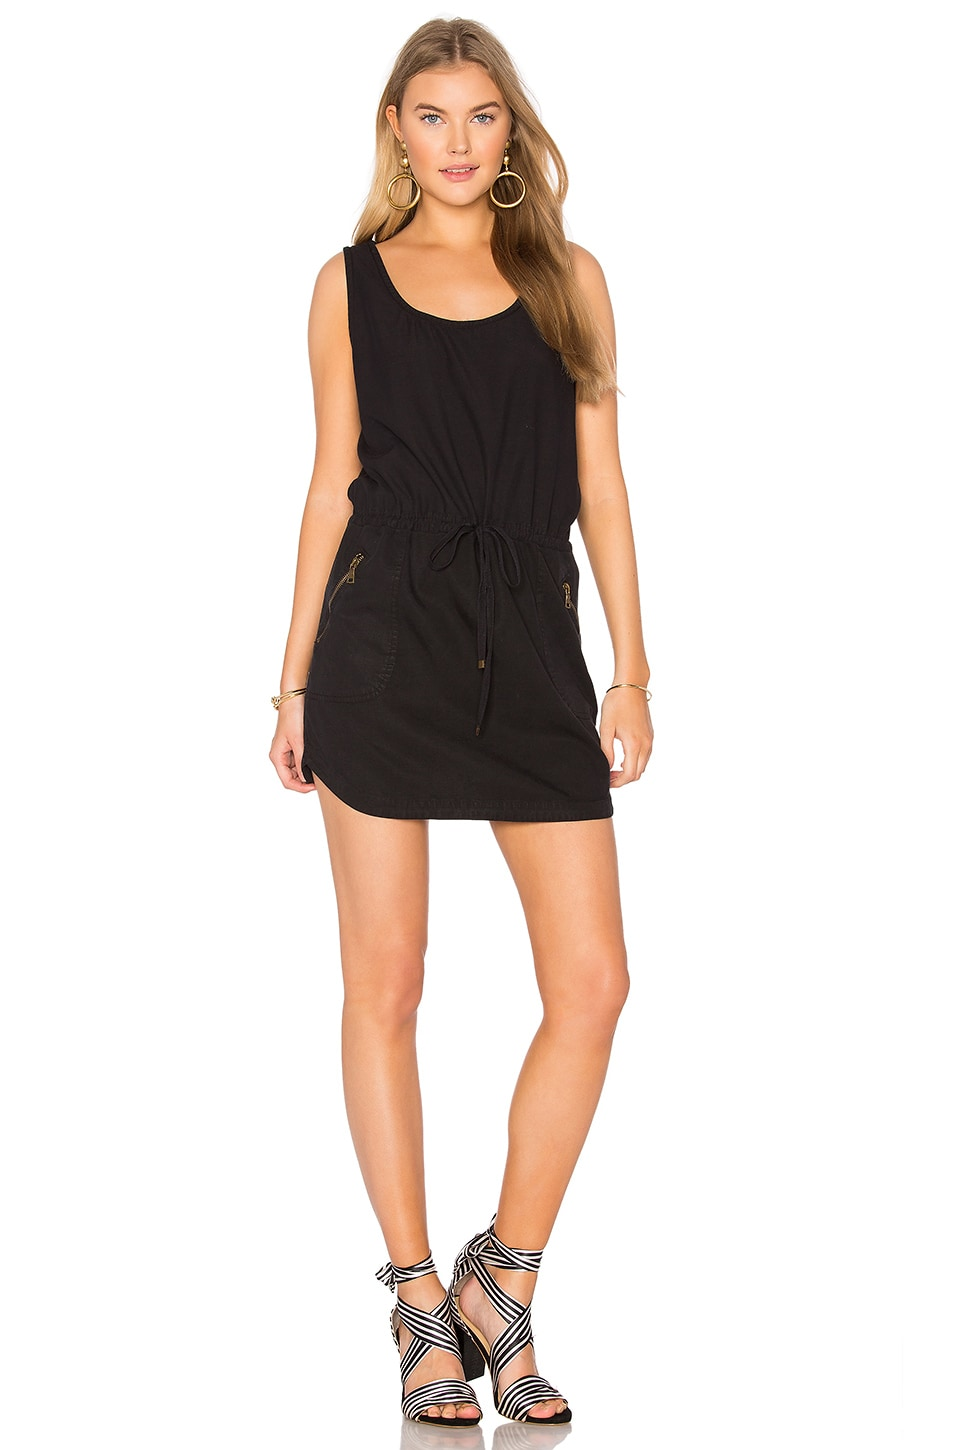 YFB CLOTHING Dime Dress in Black